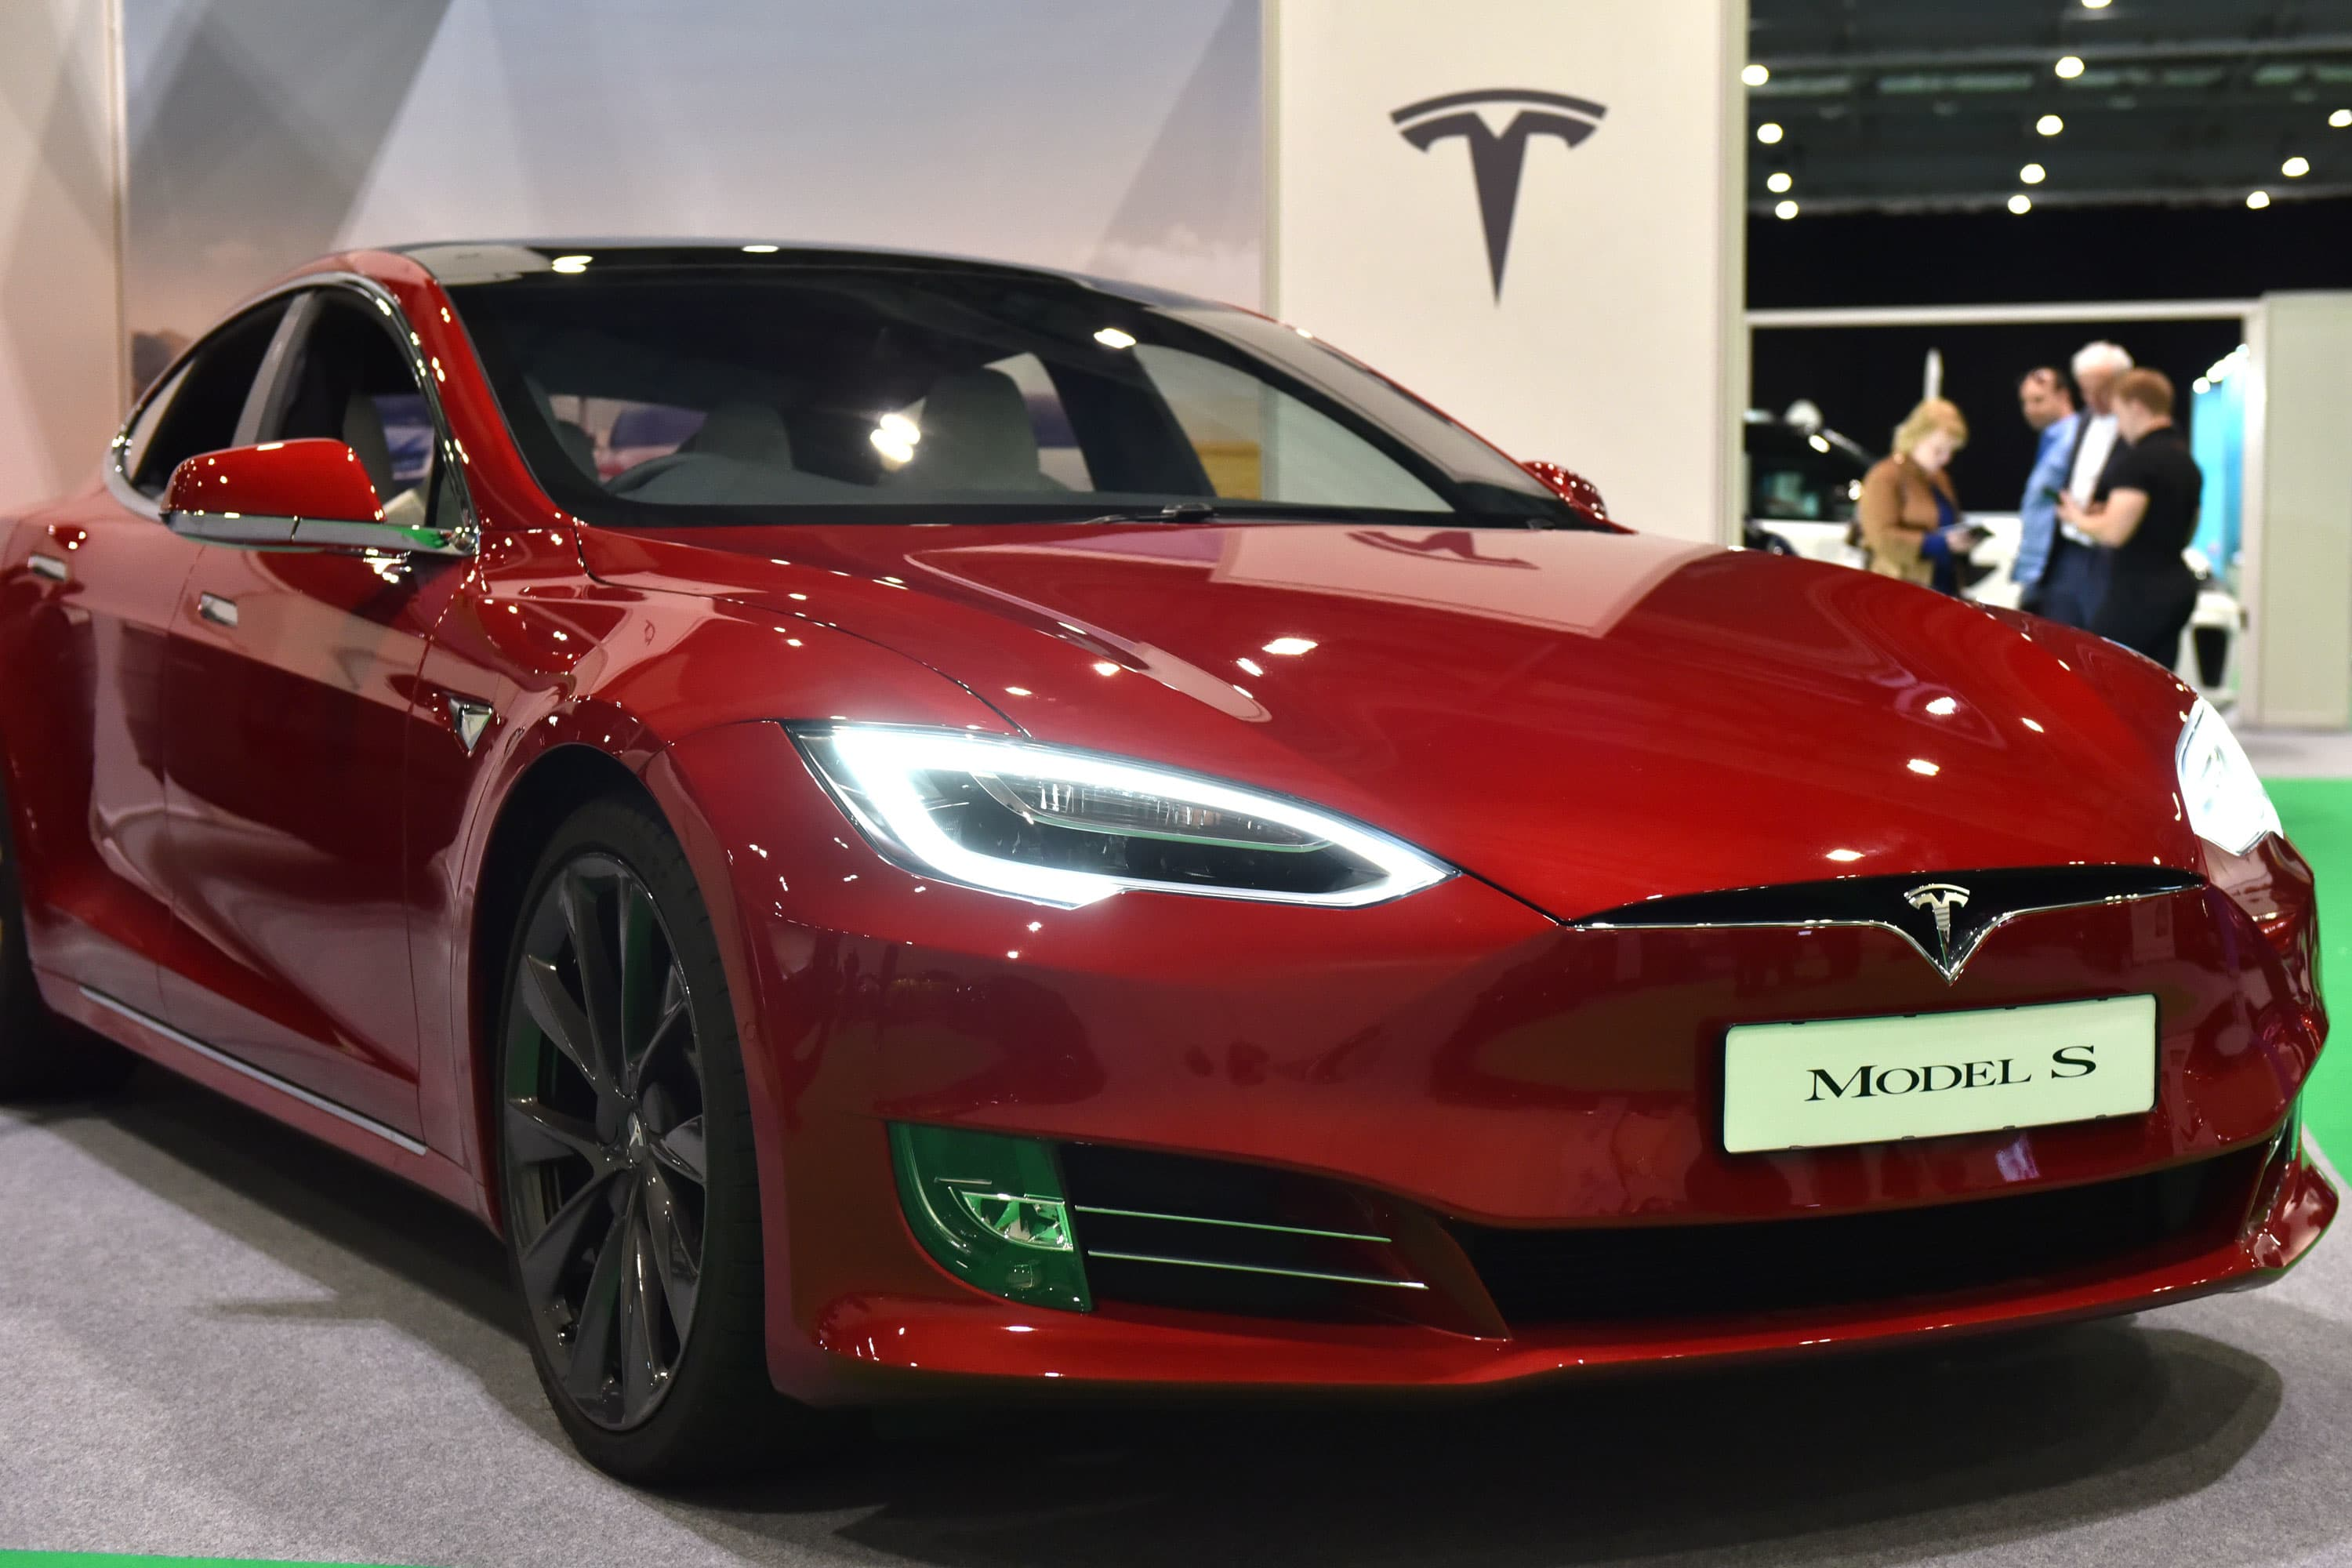 Credit Suisse initiates Tesla coverage, sees 15% downside amid competition